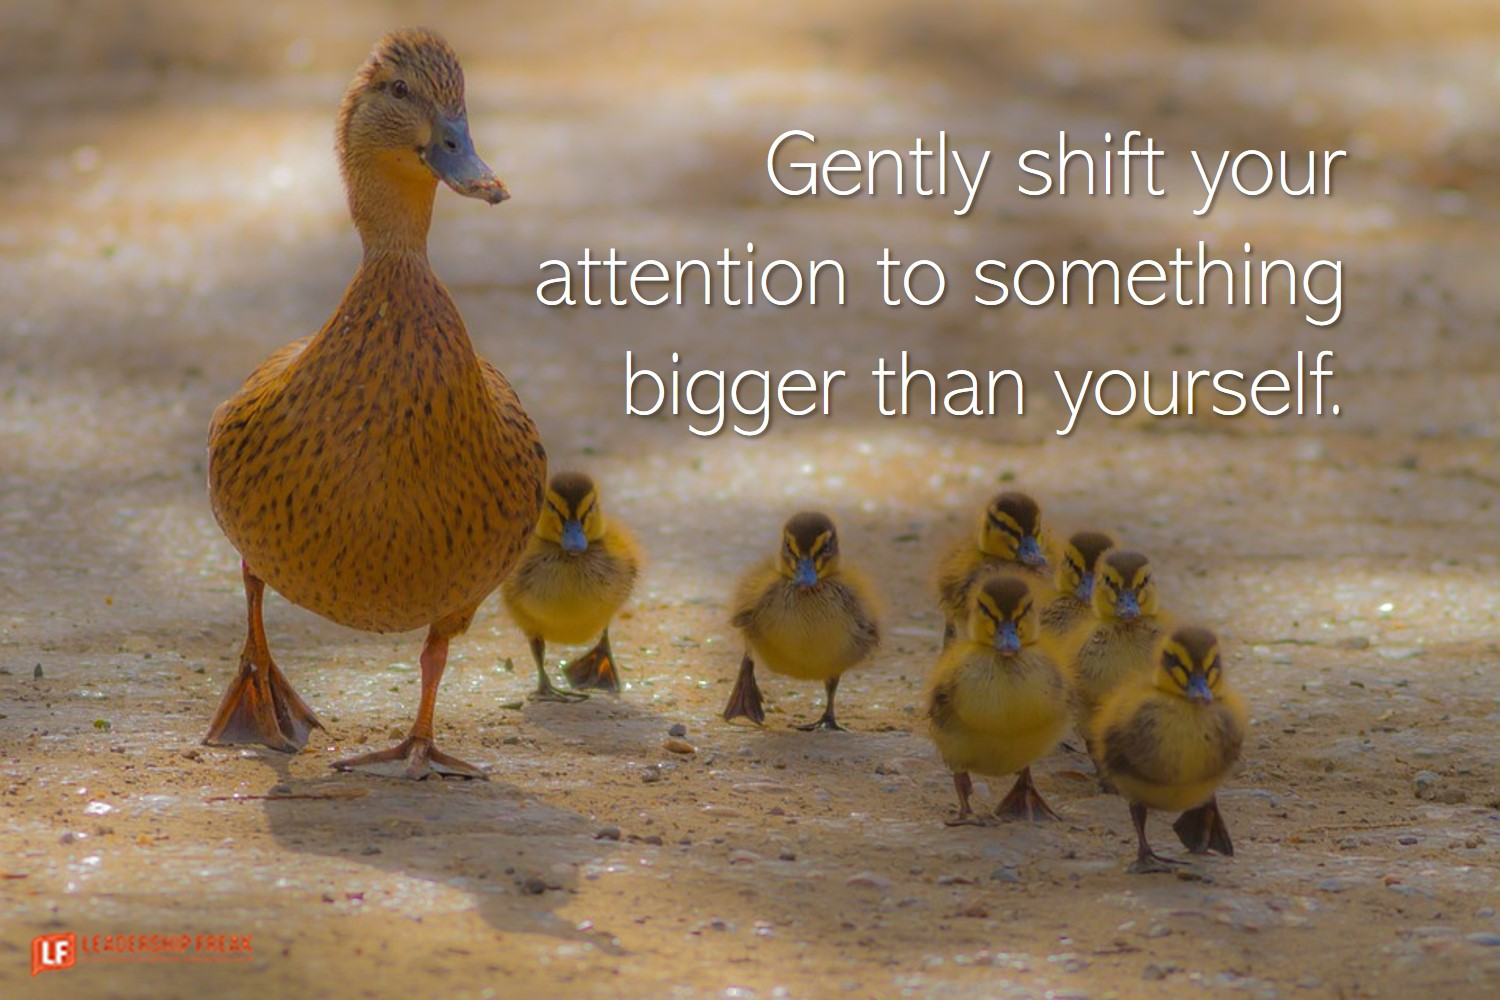 Mother duck watching over ducklings.  Gently shift your attention to something bigger than yourself.